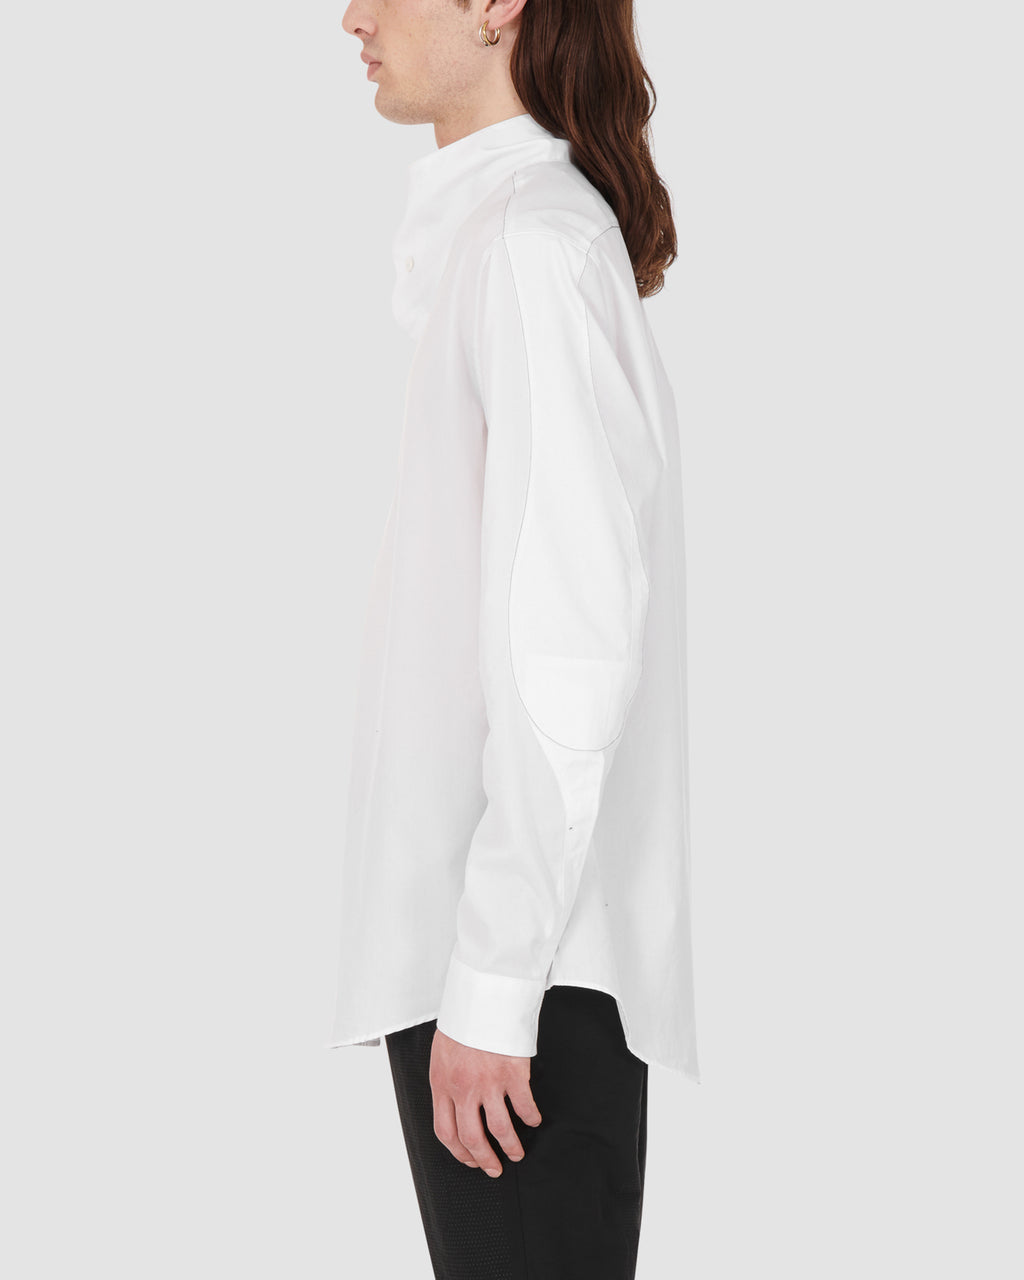 1017 ALYX 9SM | HIGH COLLAR SHIRT | Shirt | Google Shopping, Man, MEN, S20, S20 Drop II, TOPS & SHIRTS, White